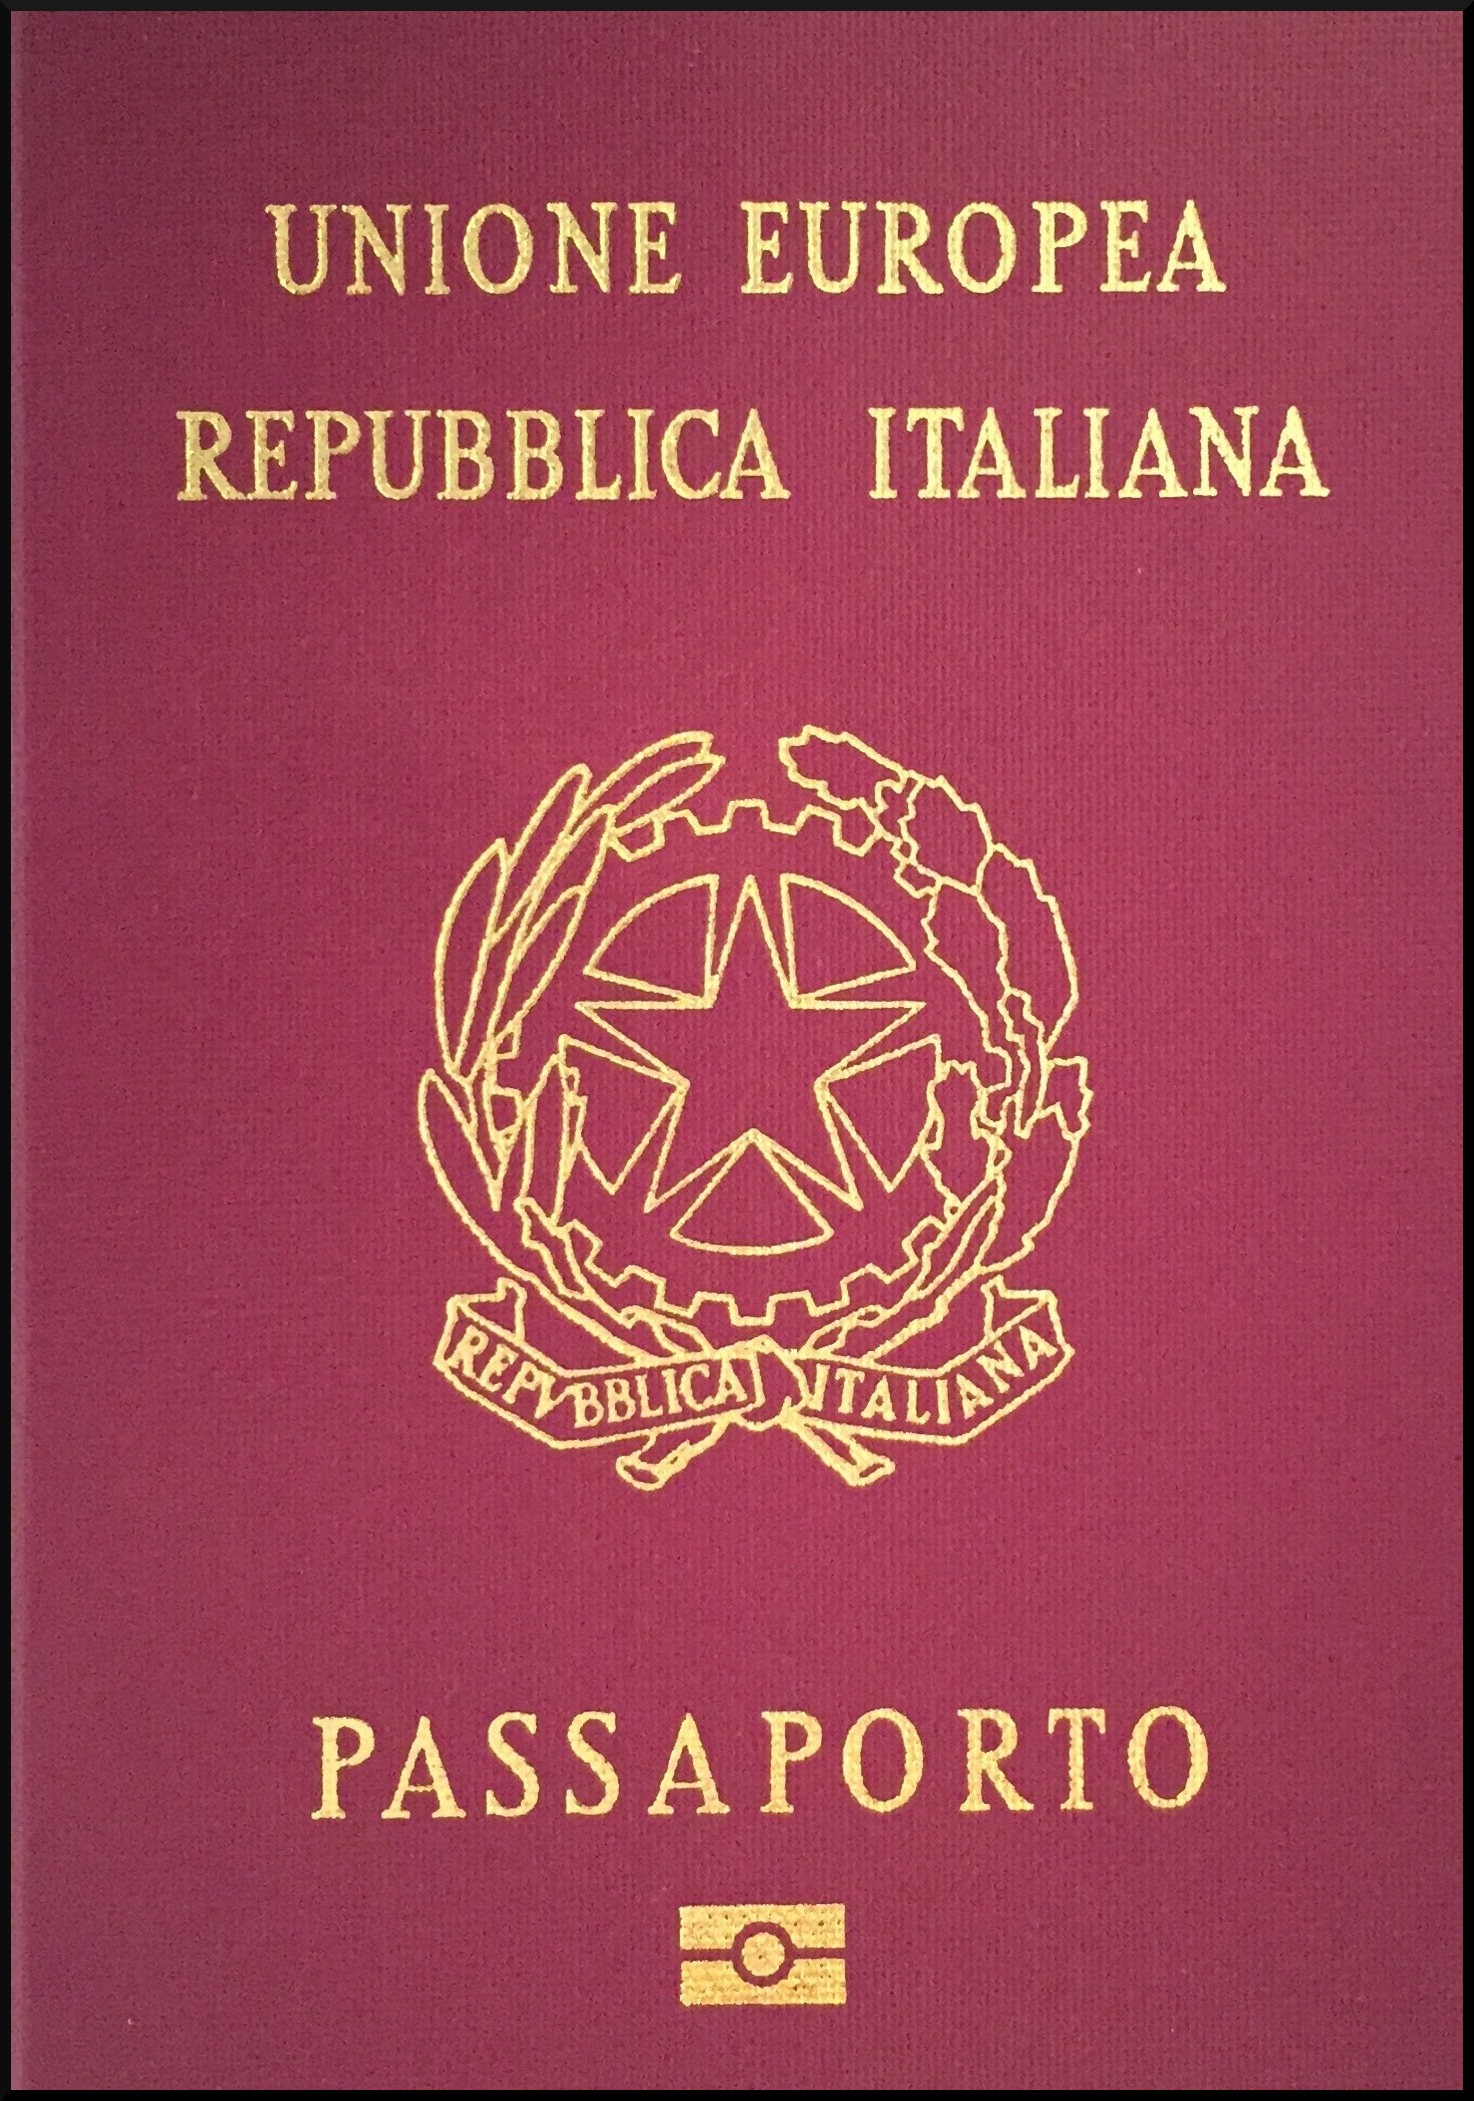 Passport of the citizen of Italy